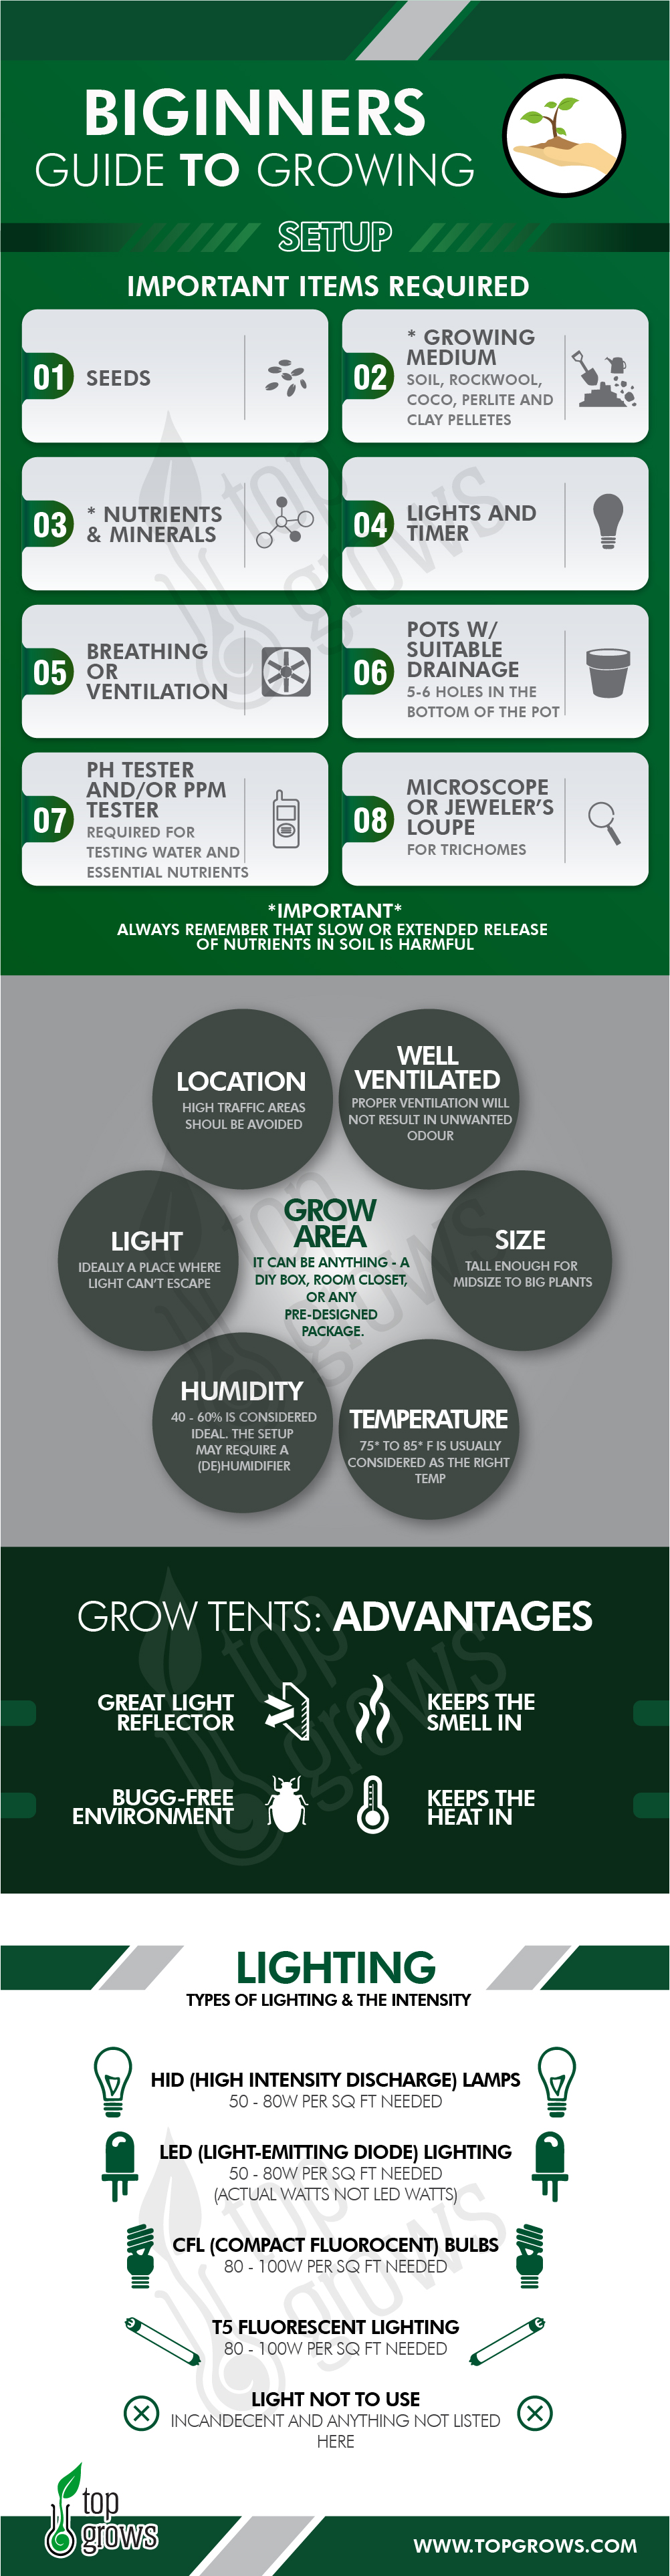 Beginers Guide to Growing Setup - Infographic